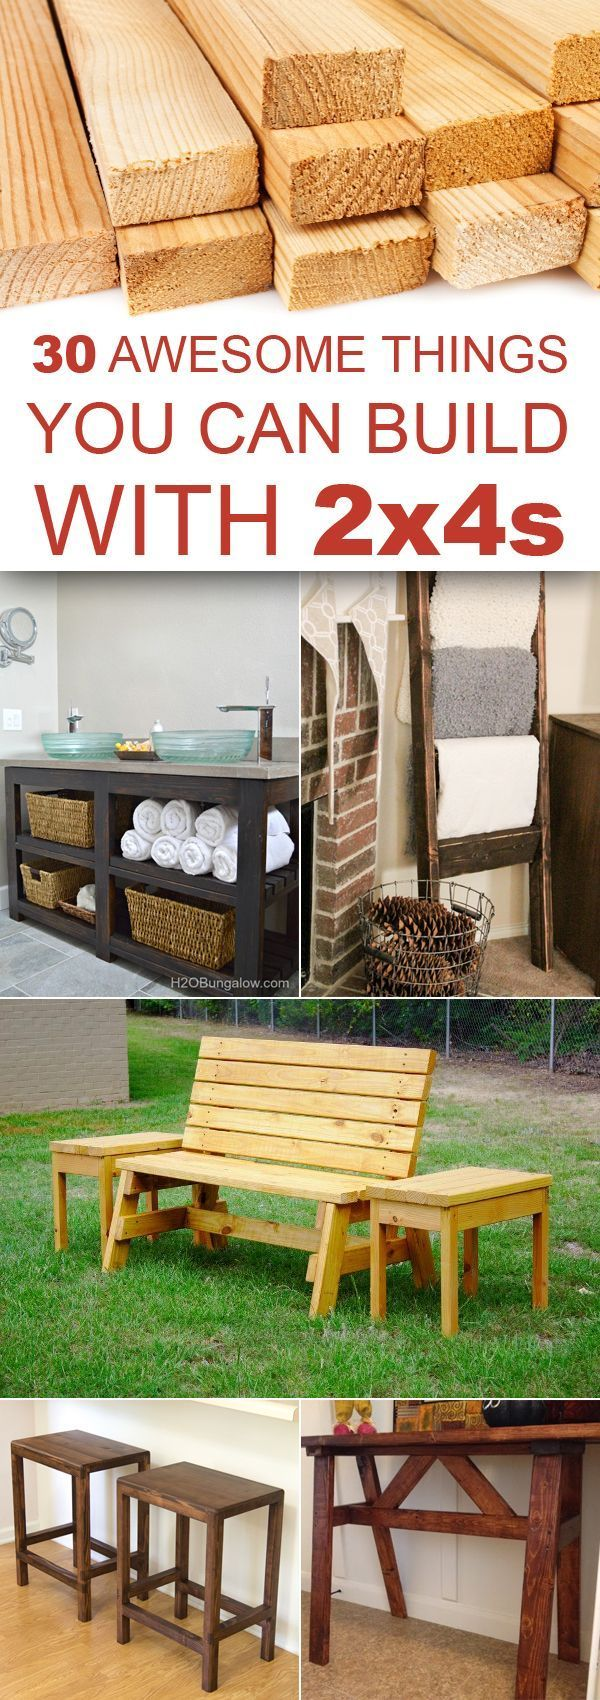 30 Awesome Things You Can Build With 2x4s (Diy Bench 2x4)